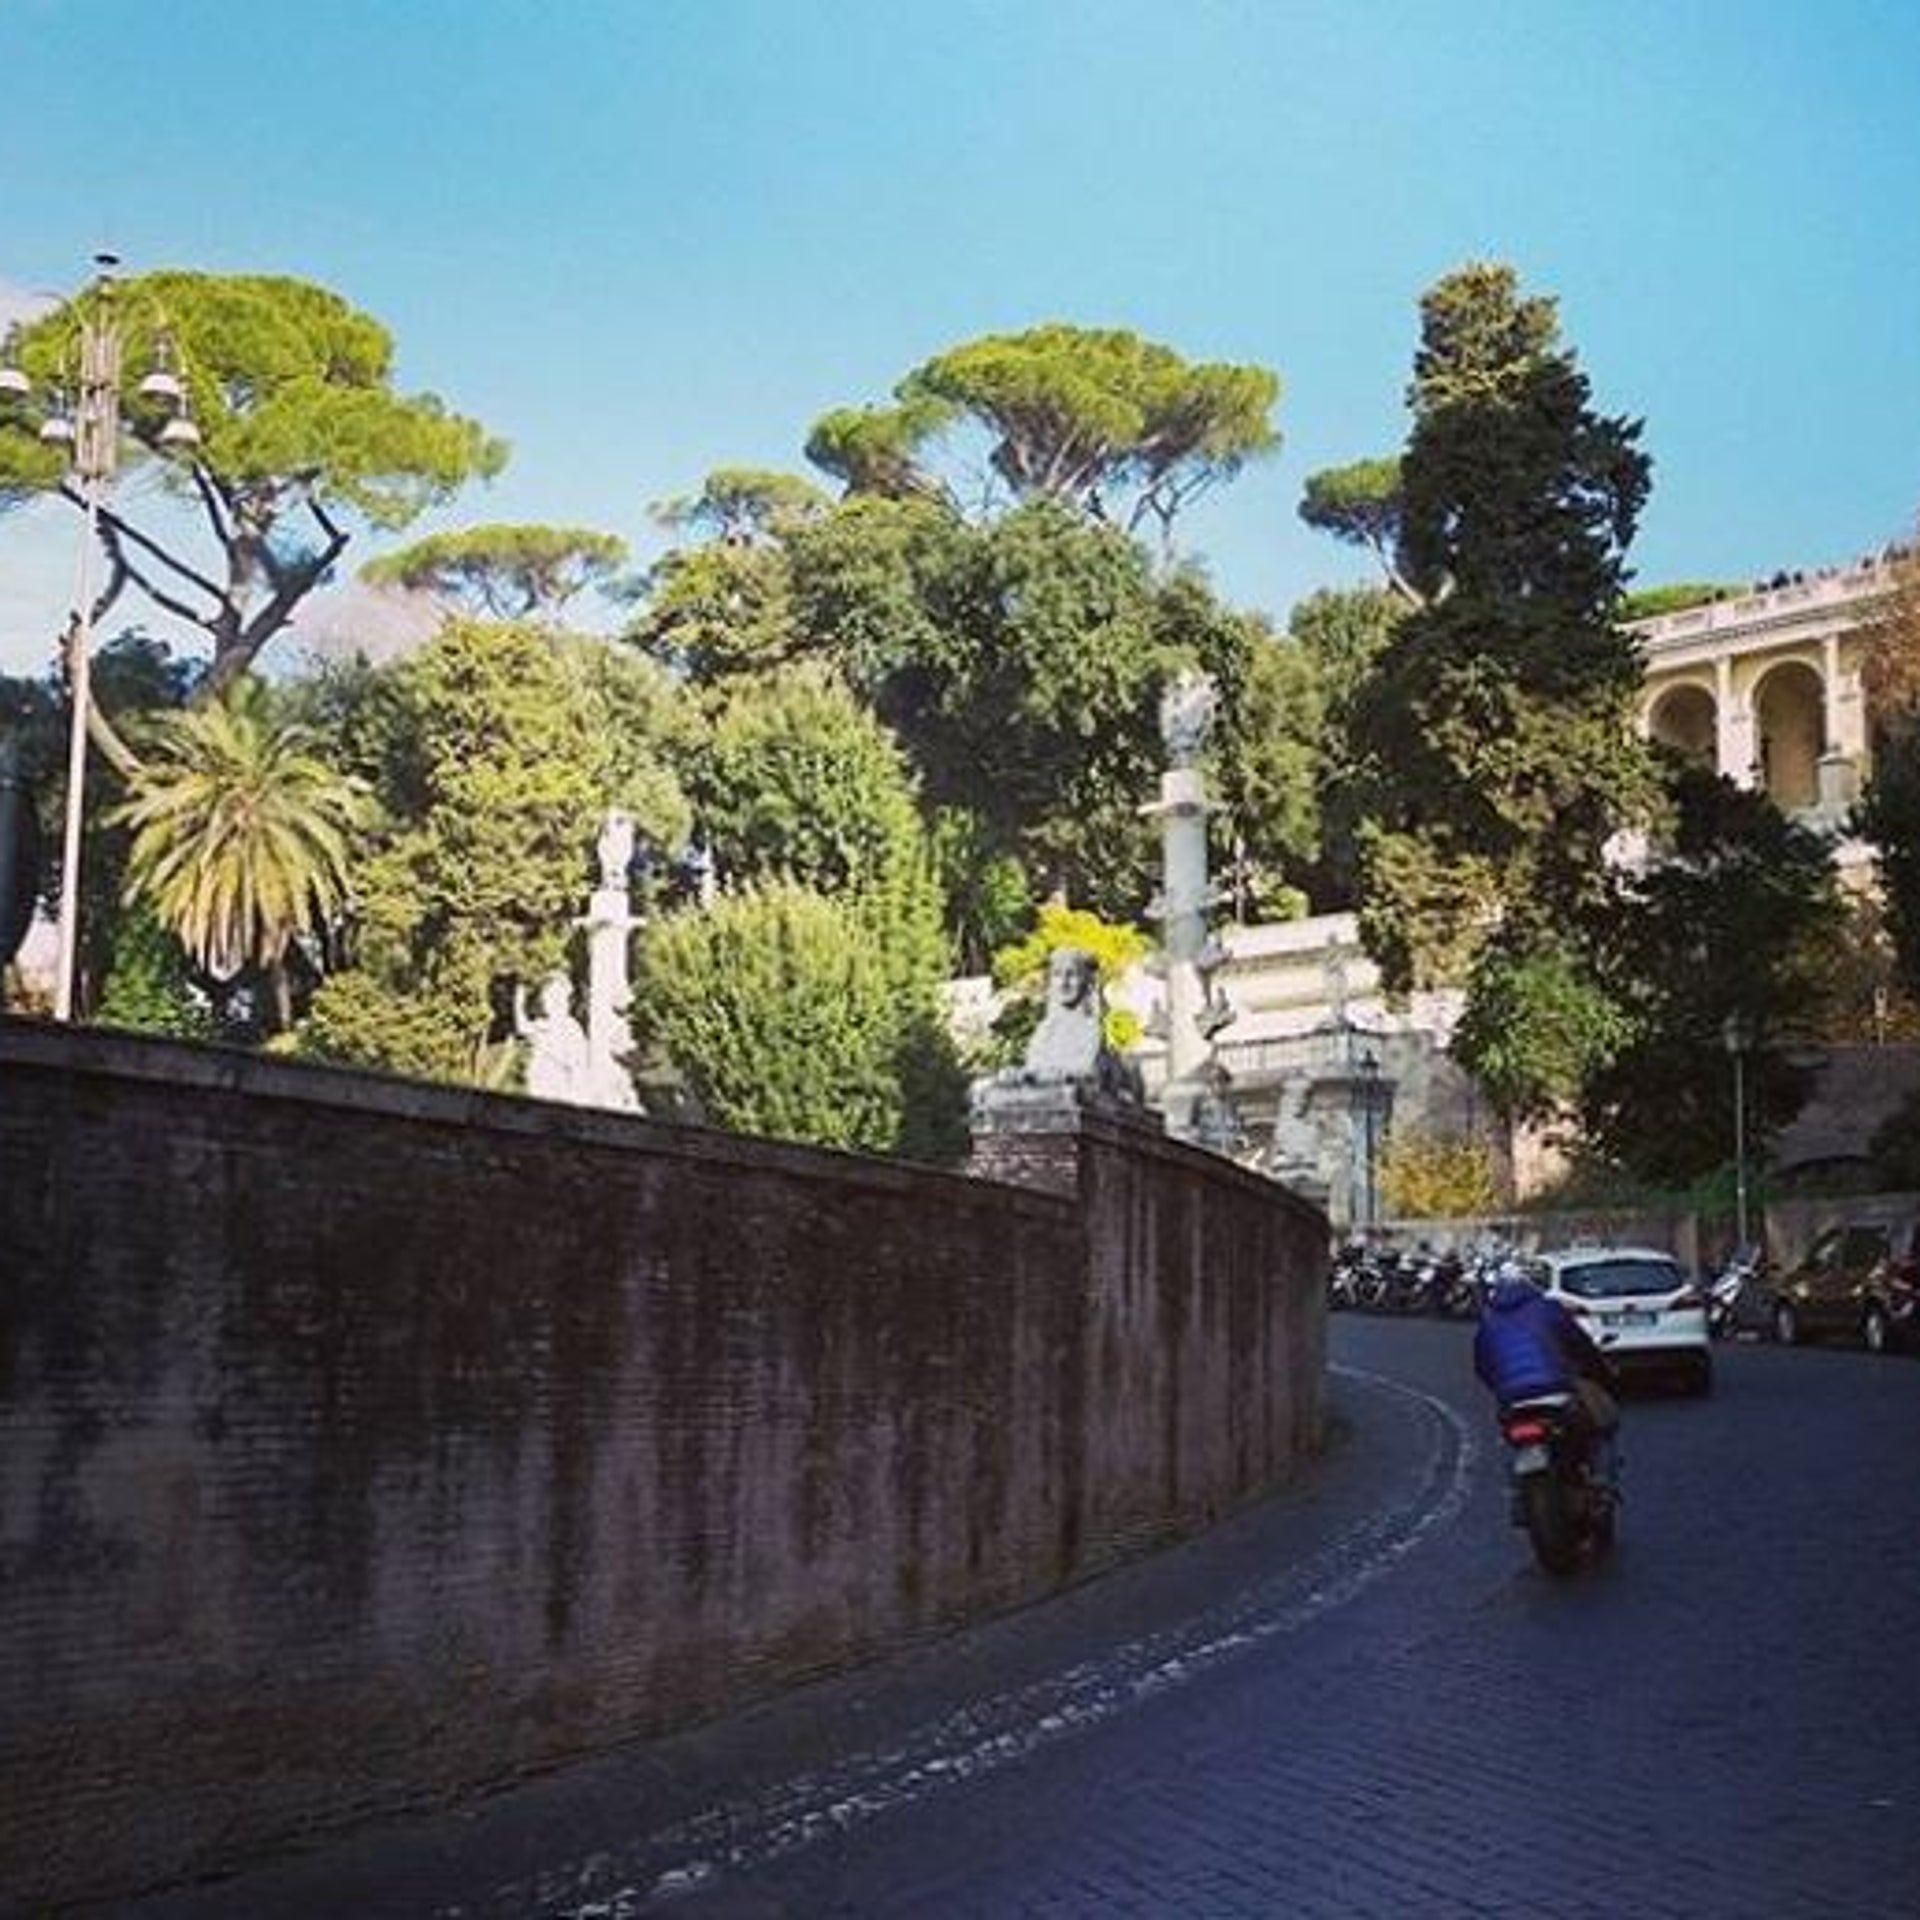 Rome. At the center of 'Find me.'